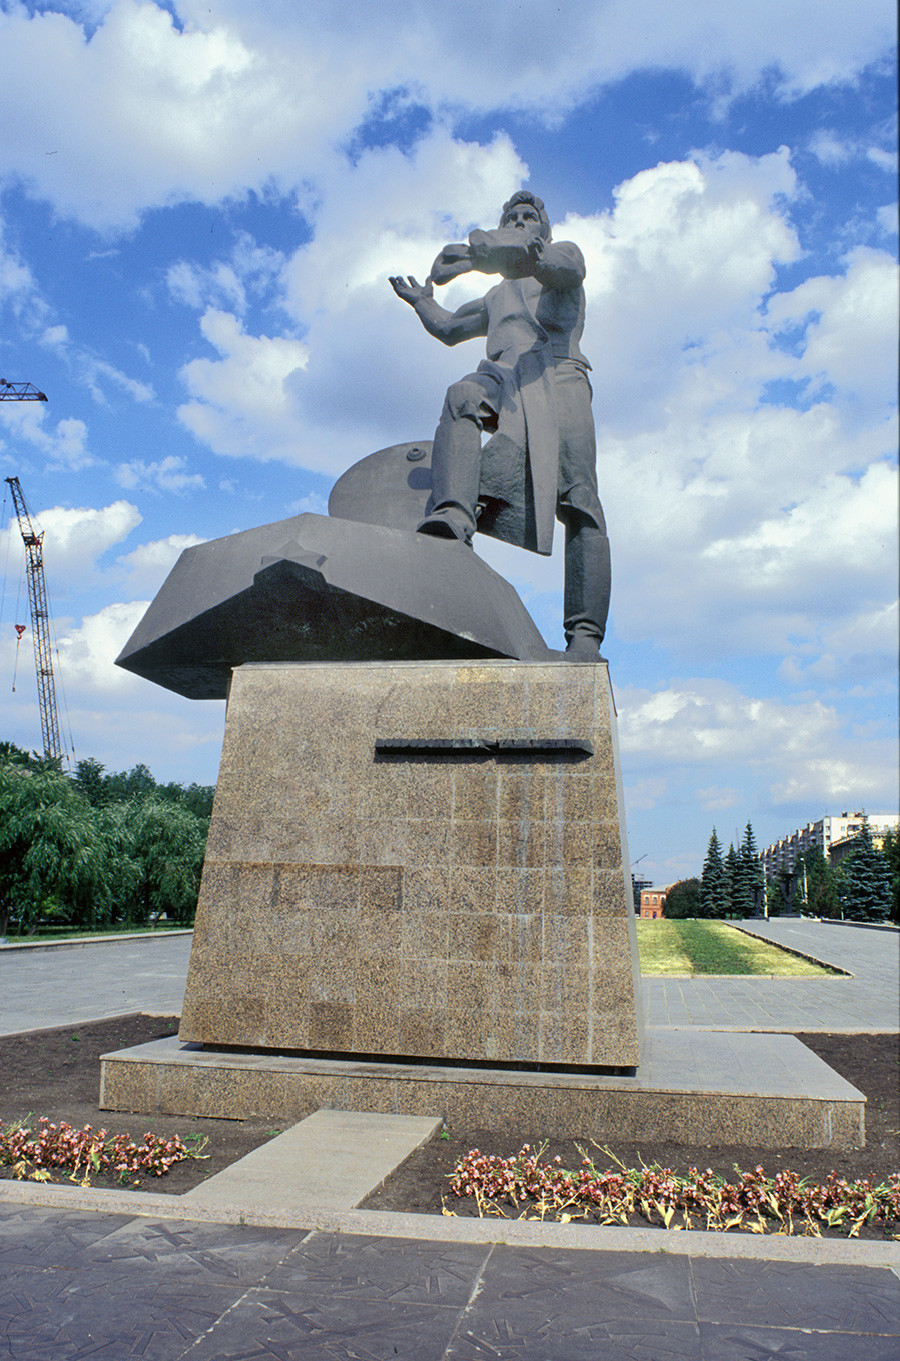 Monument to Chelyabinsk volunteers who joined the Urals Volunteer Tank Corps. Formed in 1943, the tank troops fought their way from Oryol to Berlin. Sculptor: Lev Golodnitsky. Unveiled in May 1975. July 13, 2003.